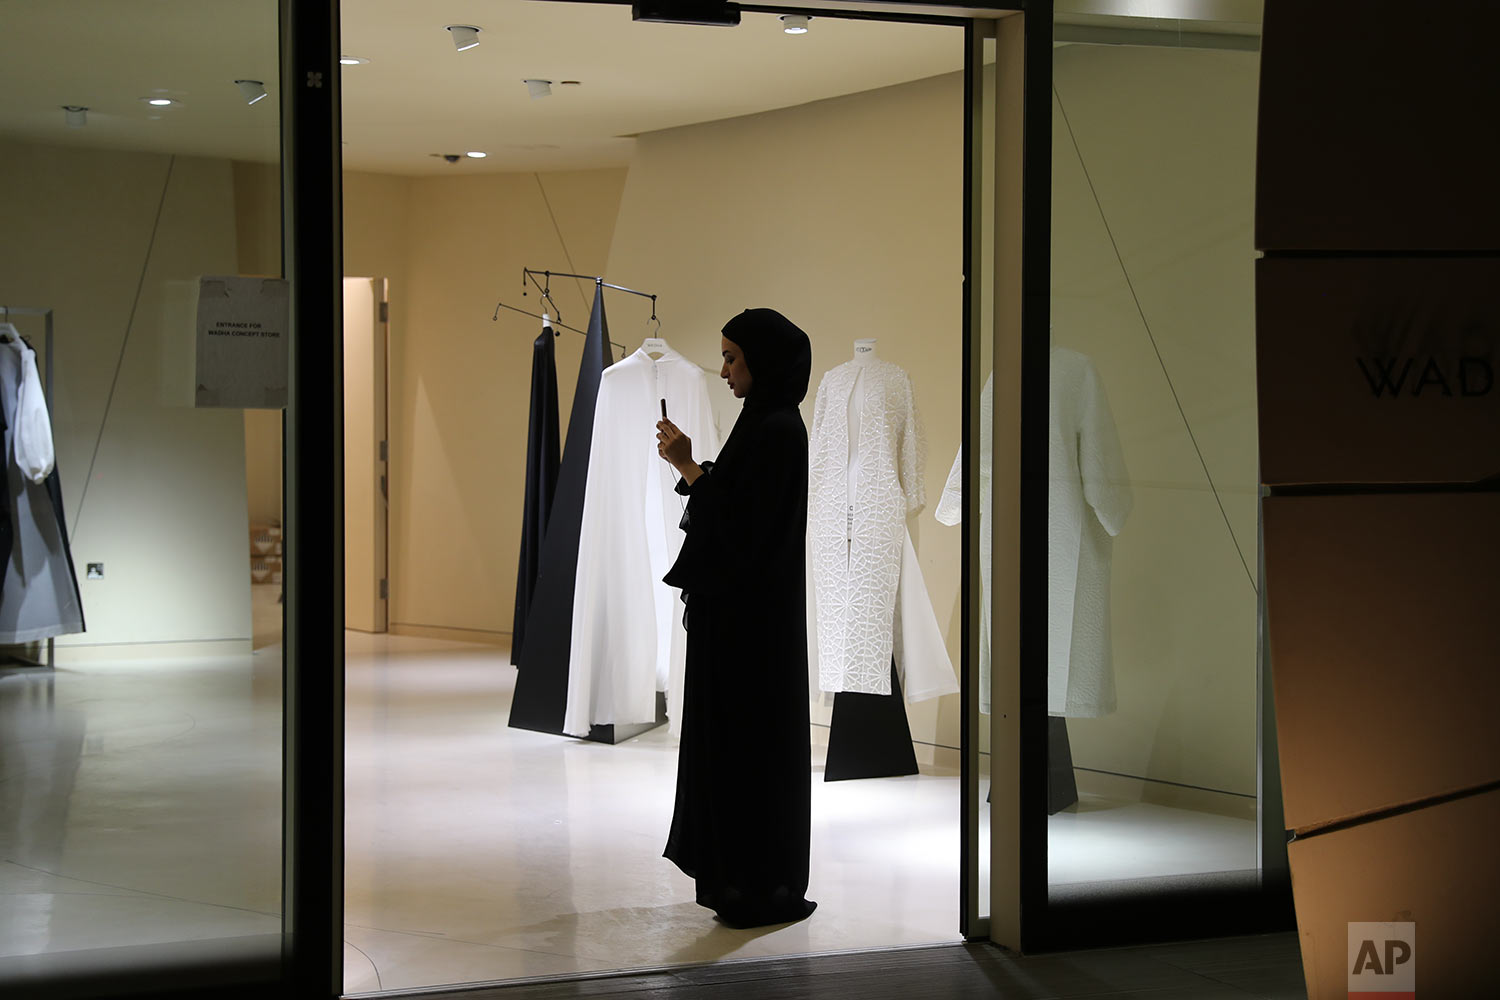 """In this Sunday, April 27, 2019 photo, a woman takes photo with her mobile phone at the """"Wadha Concept Store"""" located at the Qatar National Museum venue in Doha, Qatar. (AP Photo/Kamran Jebreili)"""